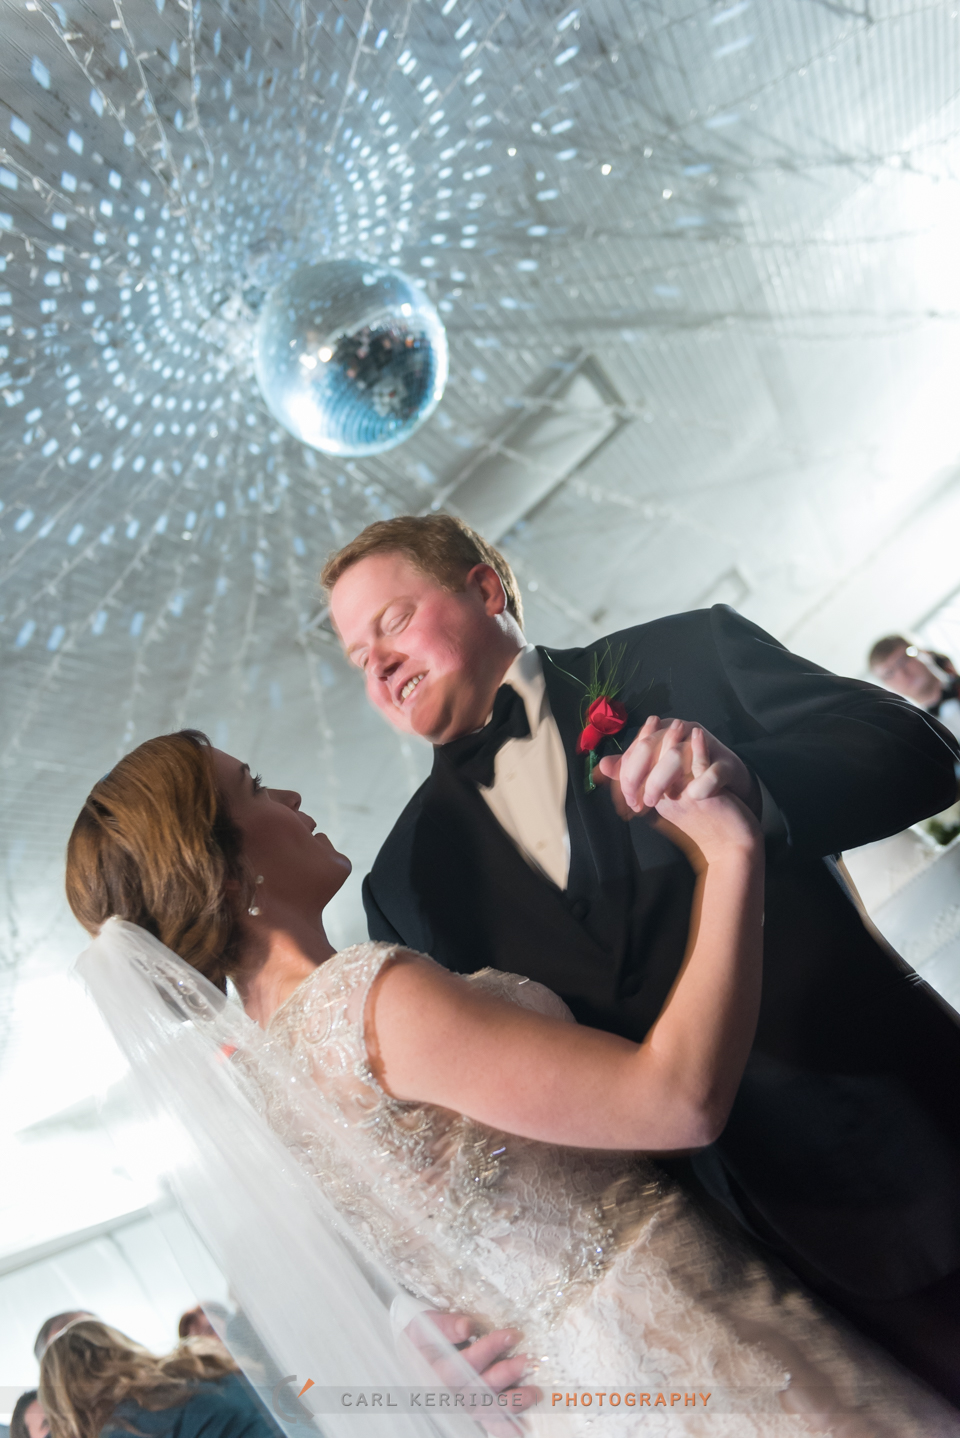 southern bride and her groom dance under a disco light at the wedding reception